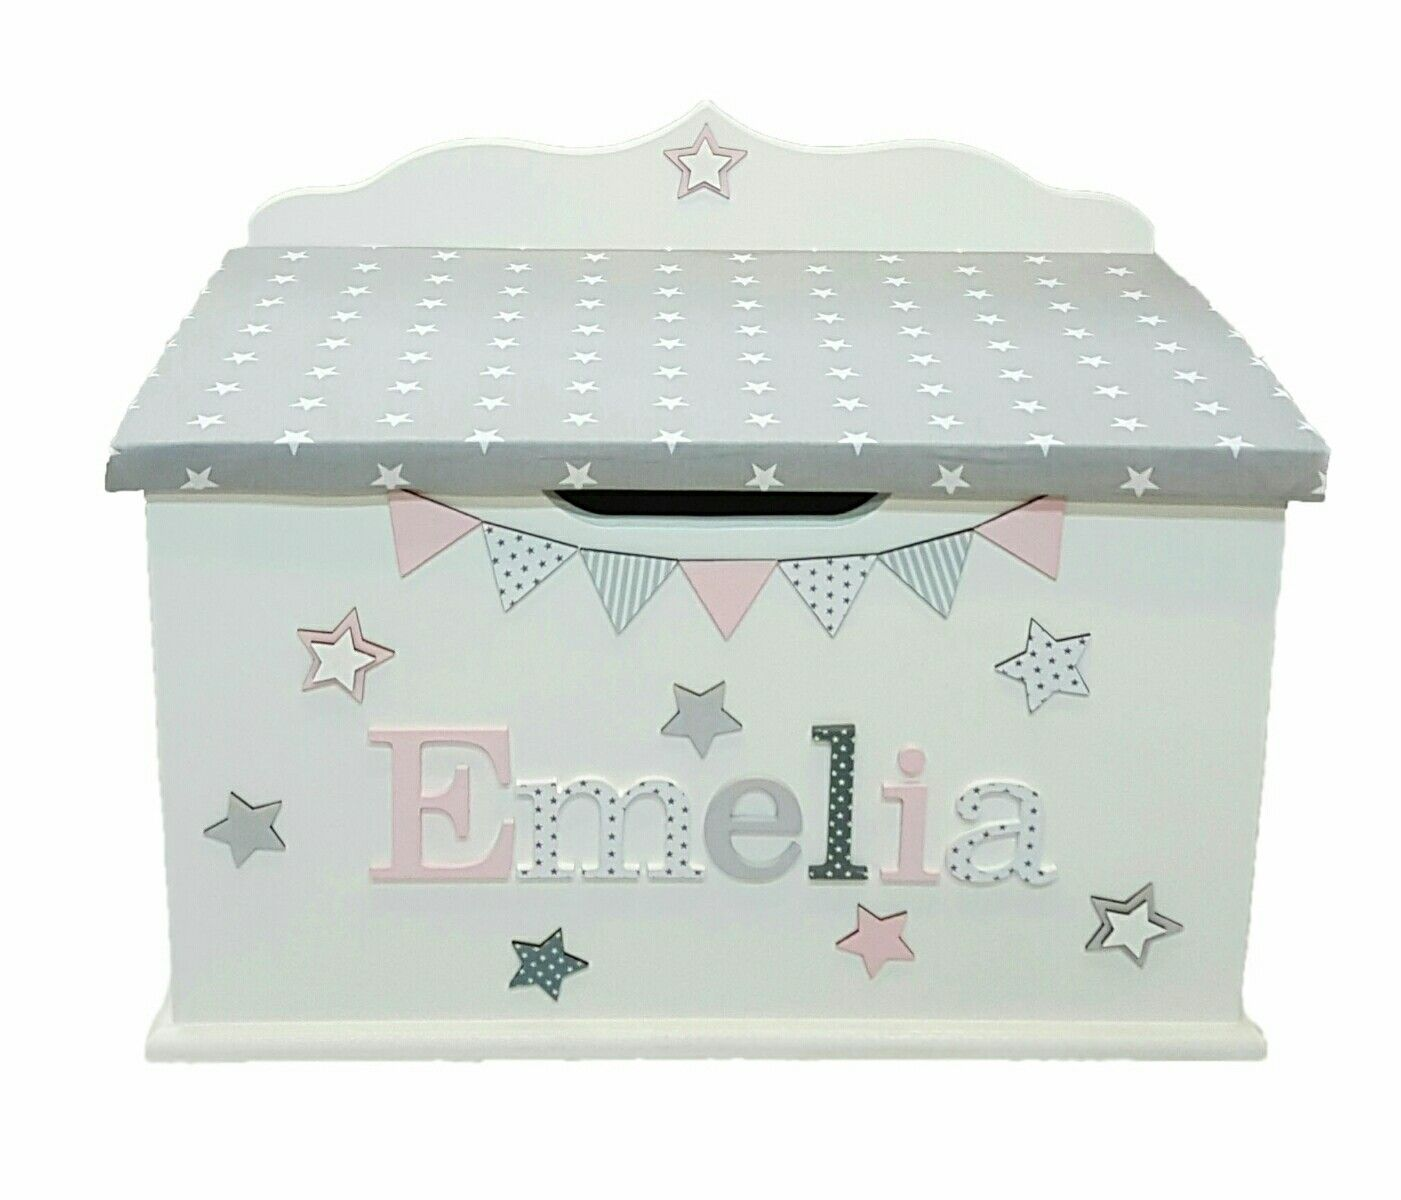 Names Of Bedroom Furniture Personalised Toy Box Children Baby Kids First Birthday Christmas